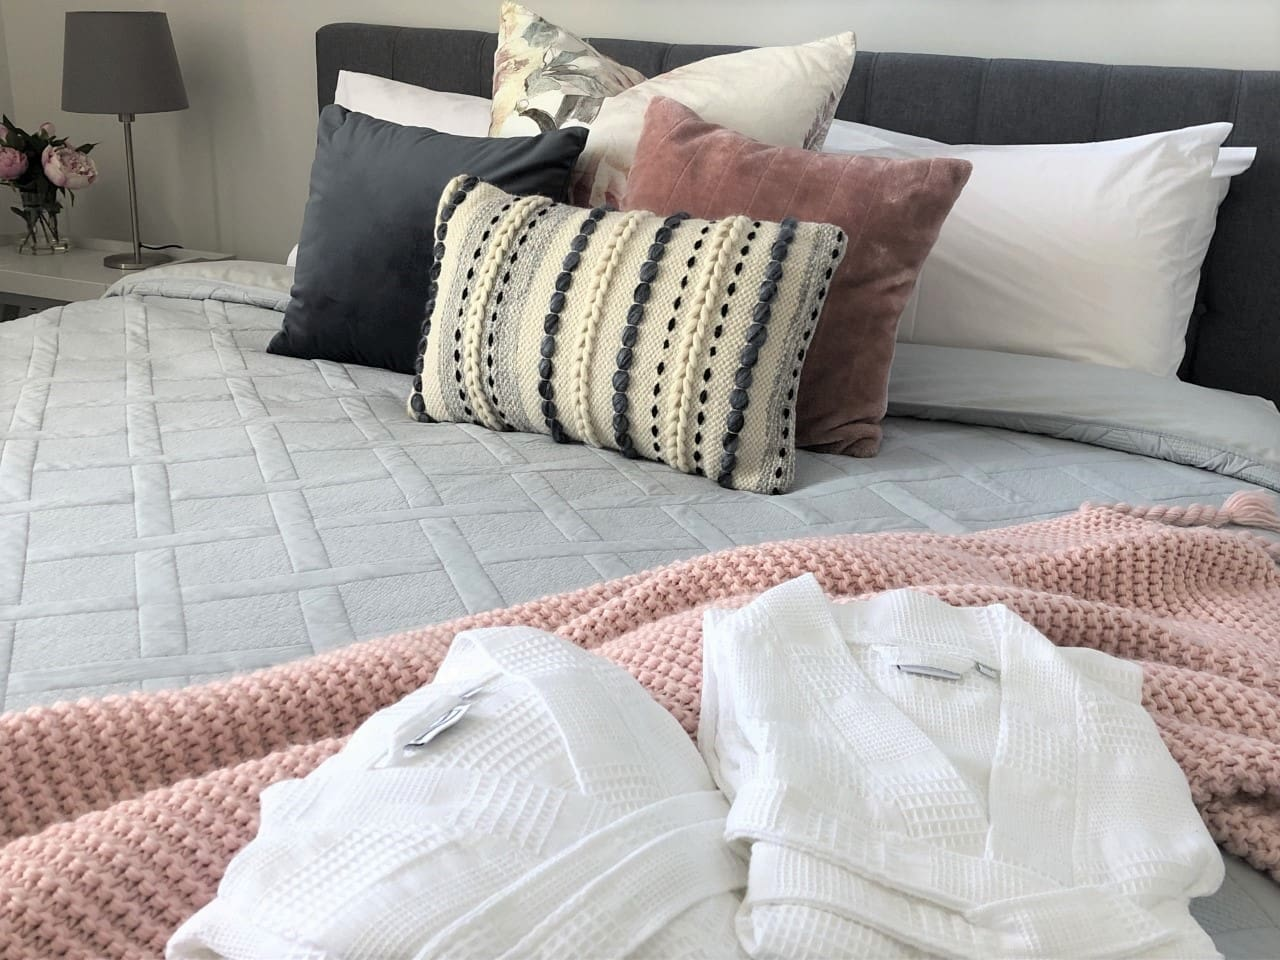 Enjoy a luxurious stay in Sapphire Beach home, relax and enjoy the comfort of quality bedding and linens whilst rejuvenating your energy.